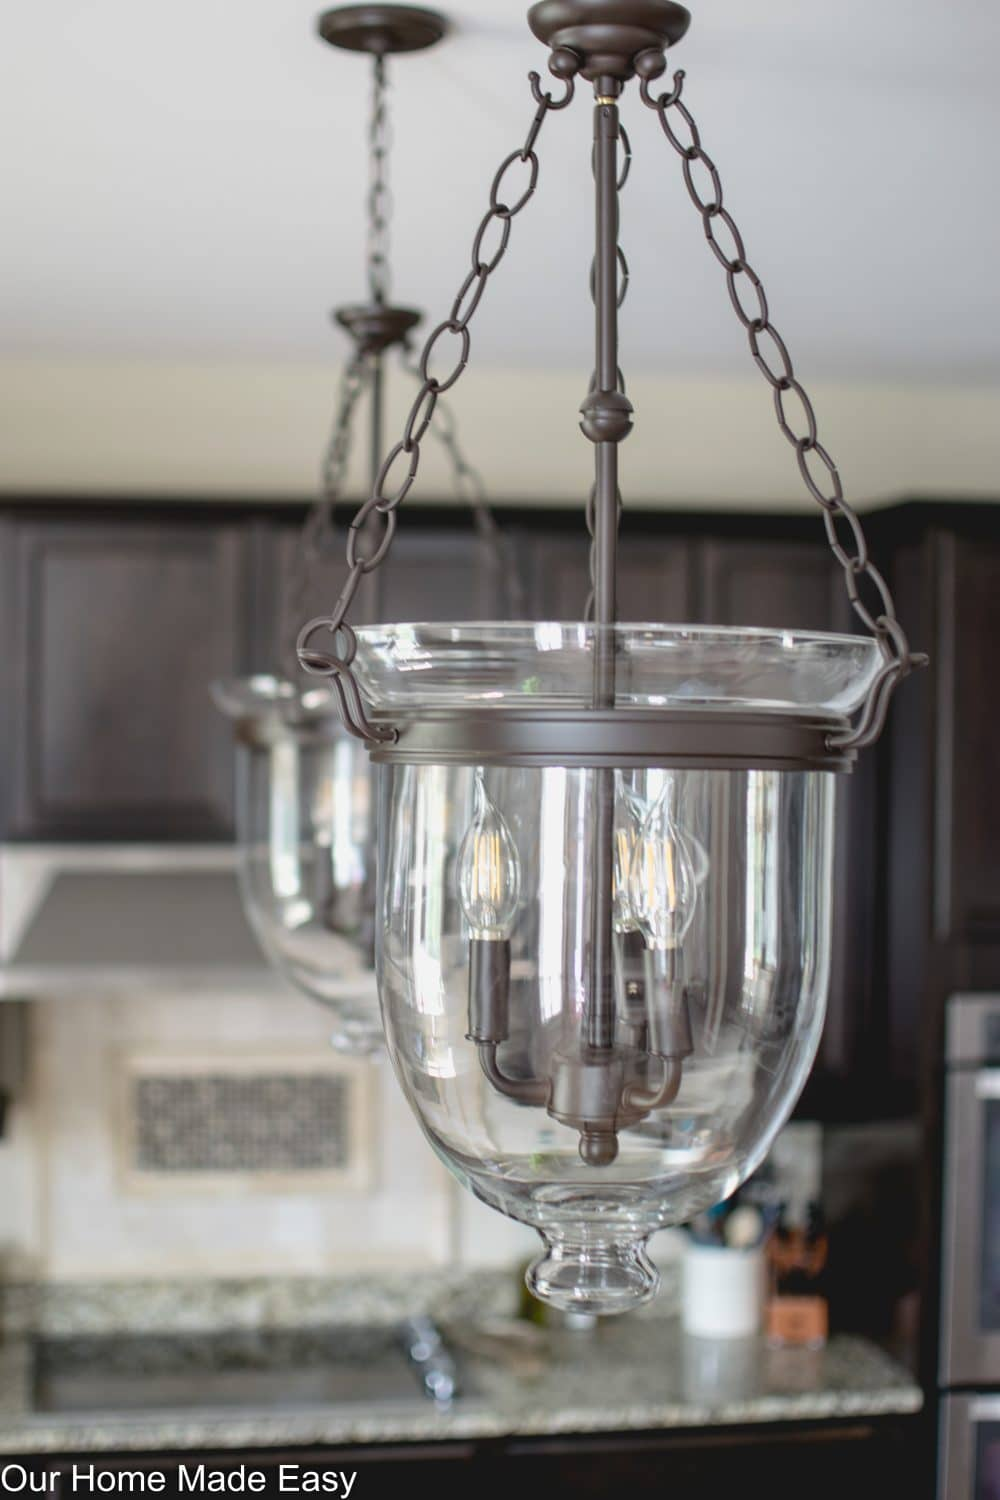 This is a cheaper version of the Pottery Barn Hundi. It's perfect for a kitchen island pendant.